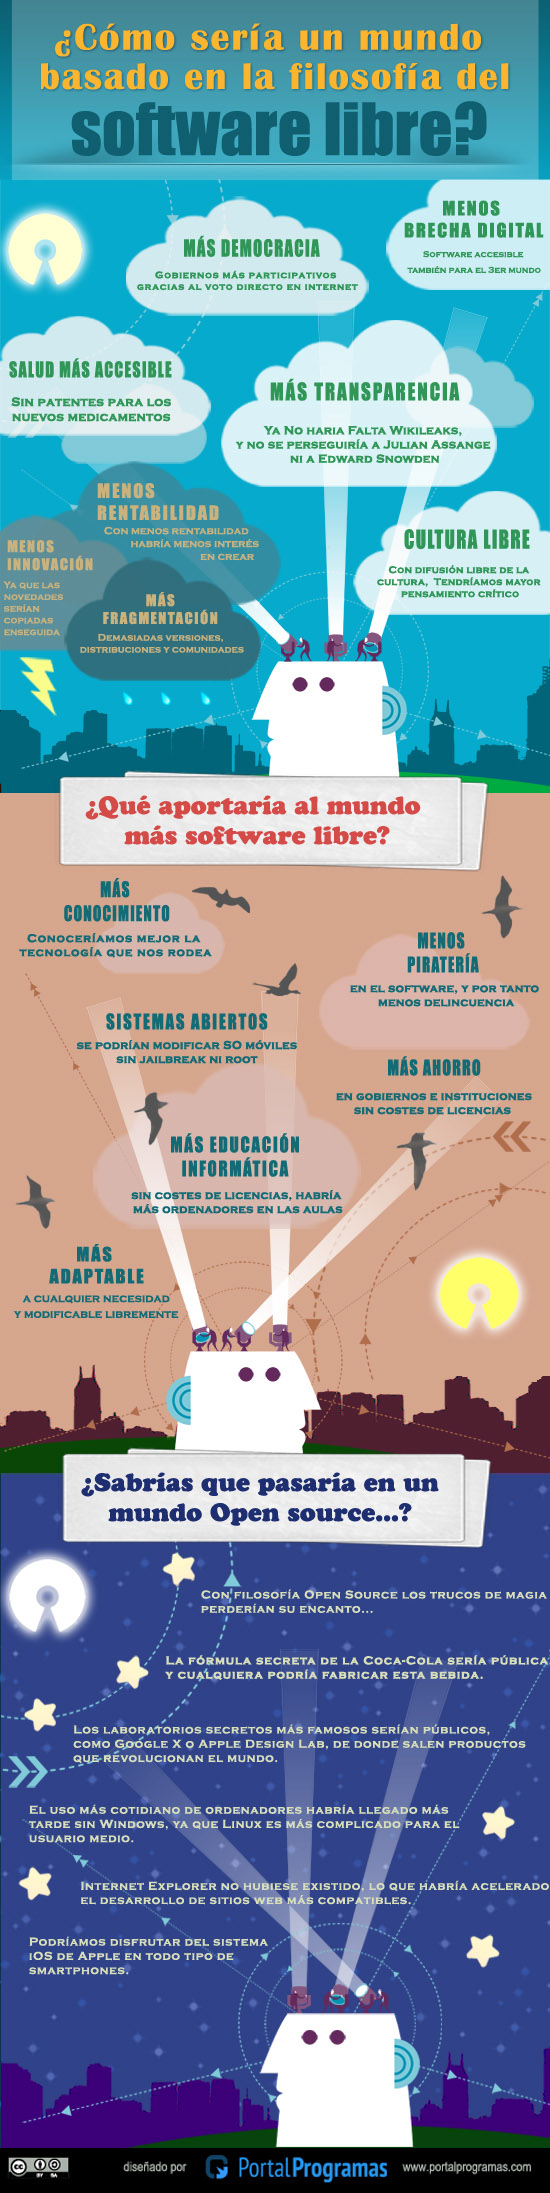 el-mundo-segun-software-libre